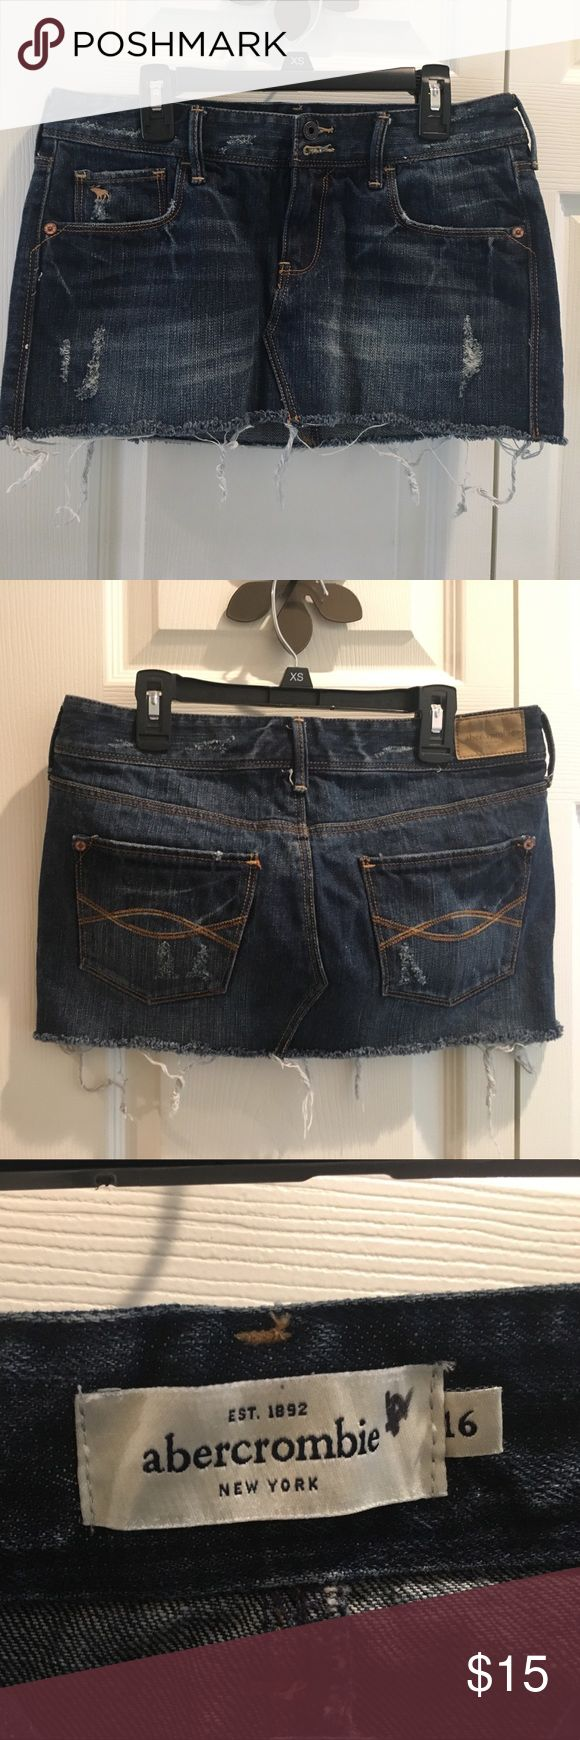 Girl's Abercrombie Distressed Jean Skirt Excellent, clean condition. Only work a few times. Distressed and frayed look. Abercombie Kids Bottoms Skirts